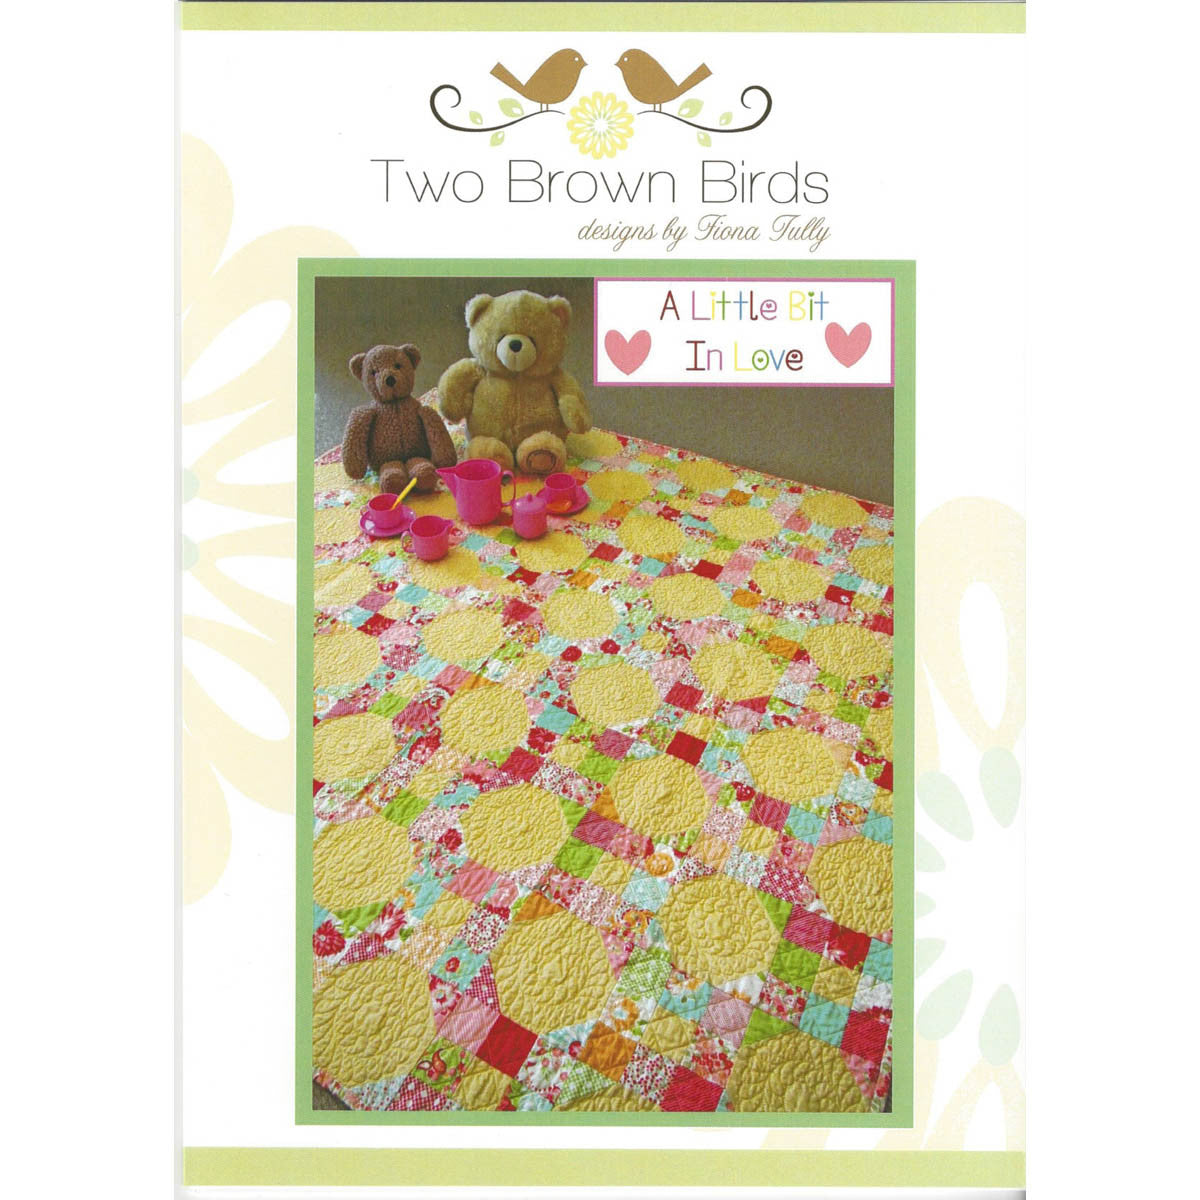 A LITTLE BIT IN LOVE - Quilt Pattern - by Australian Designer Fiona Tully - brand Two Brown Birds